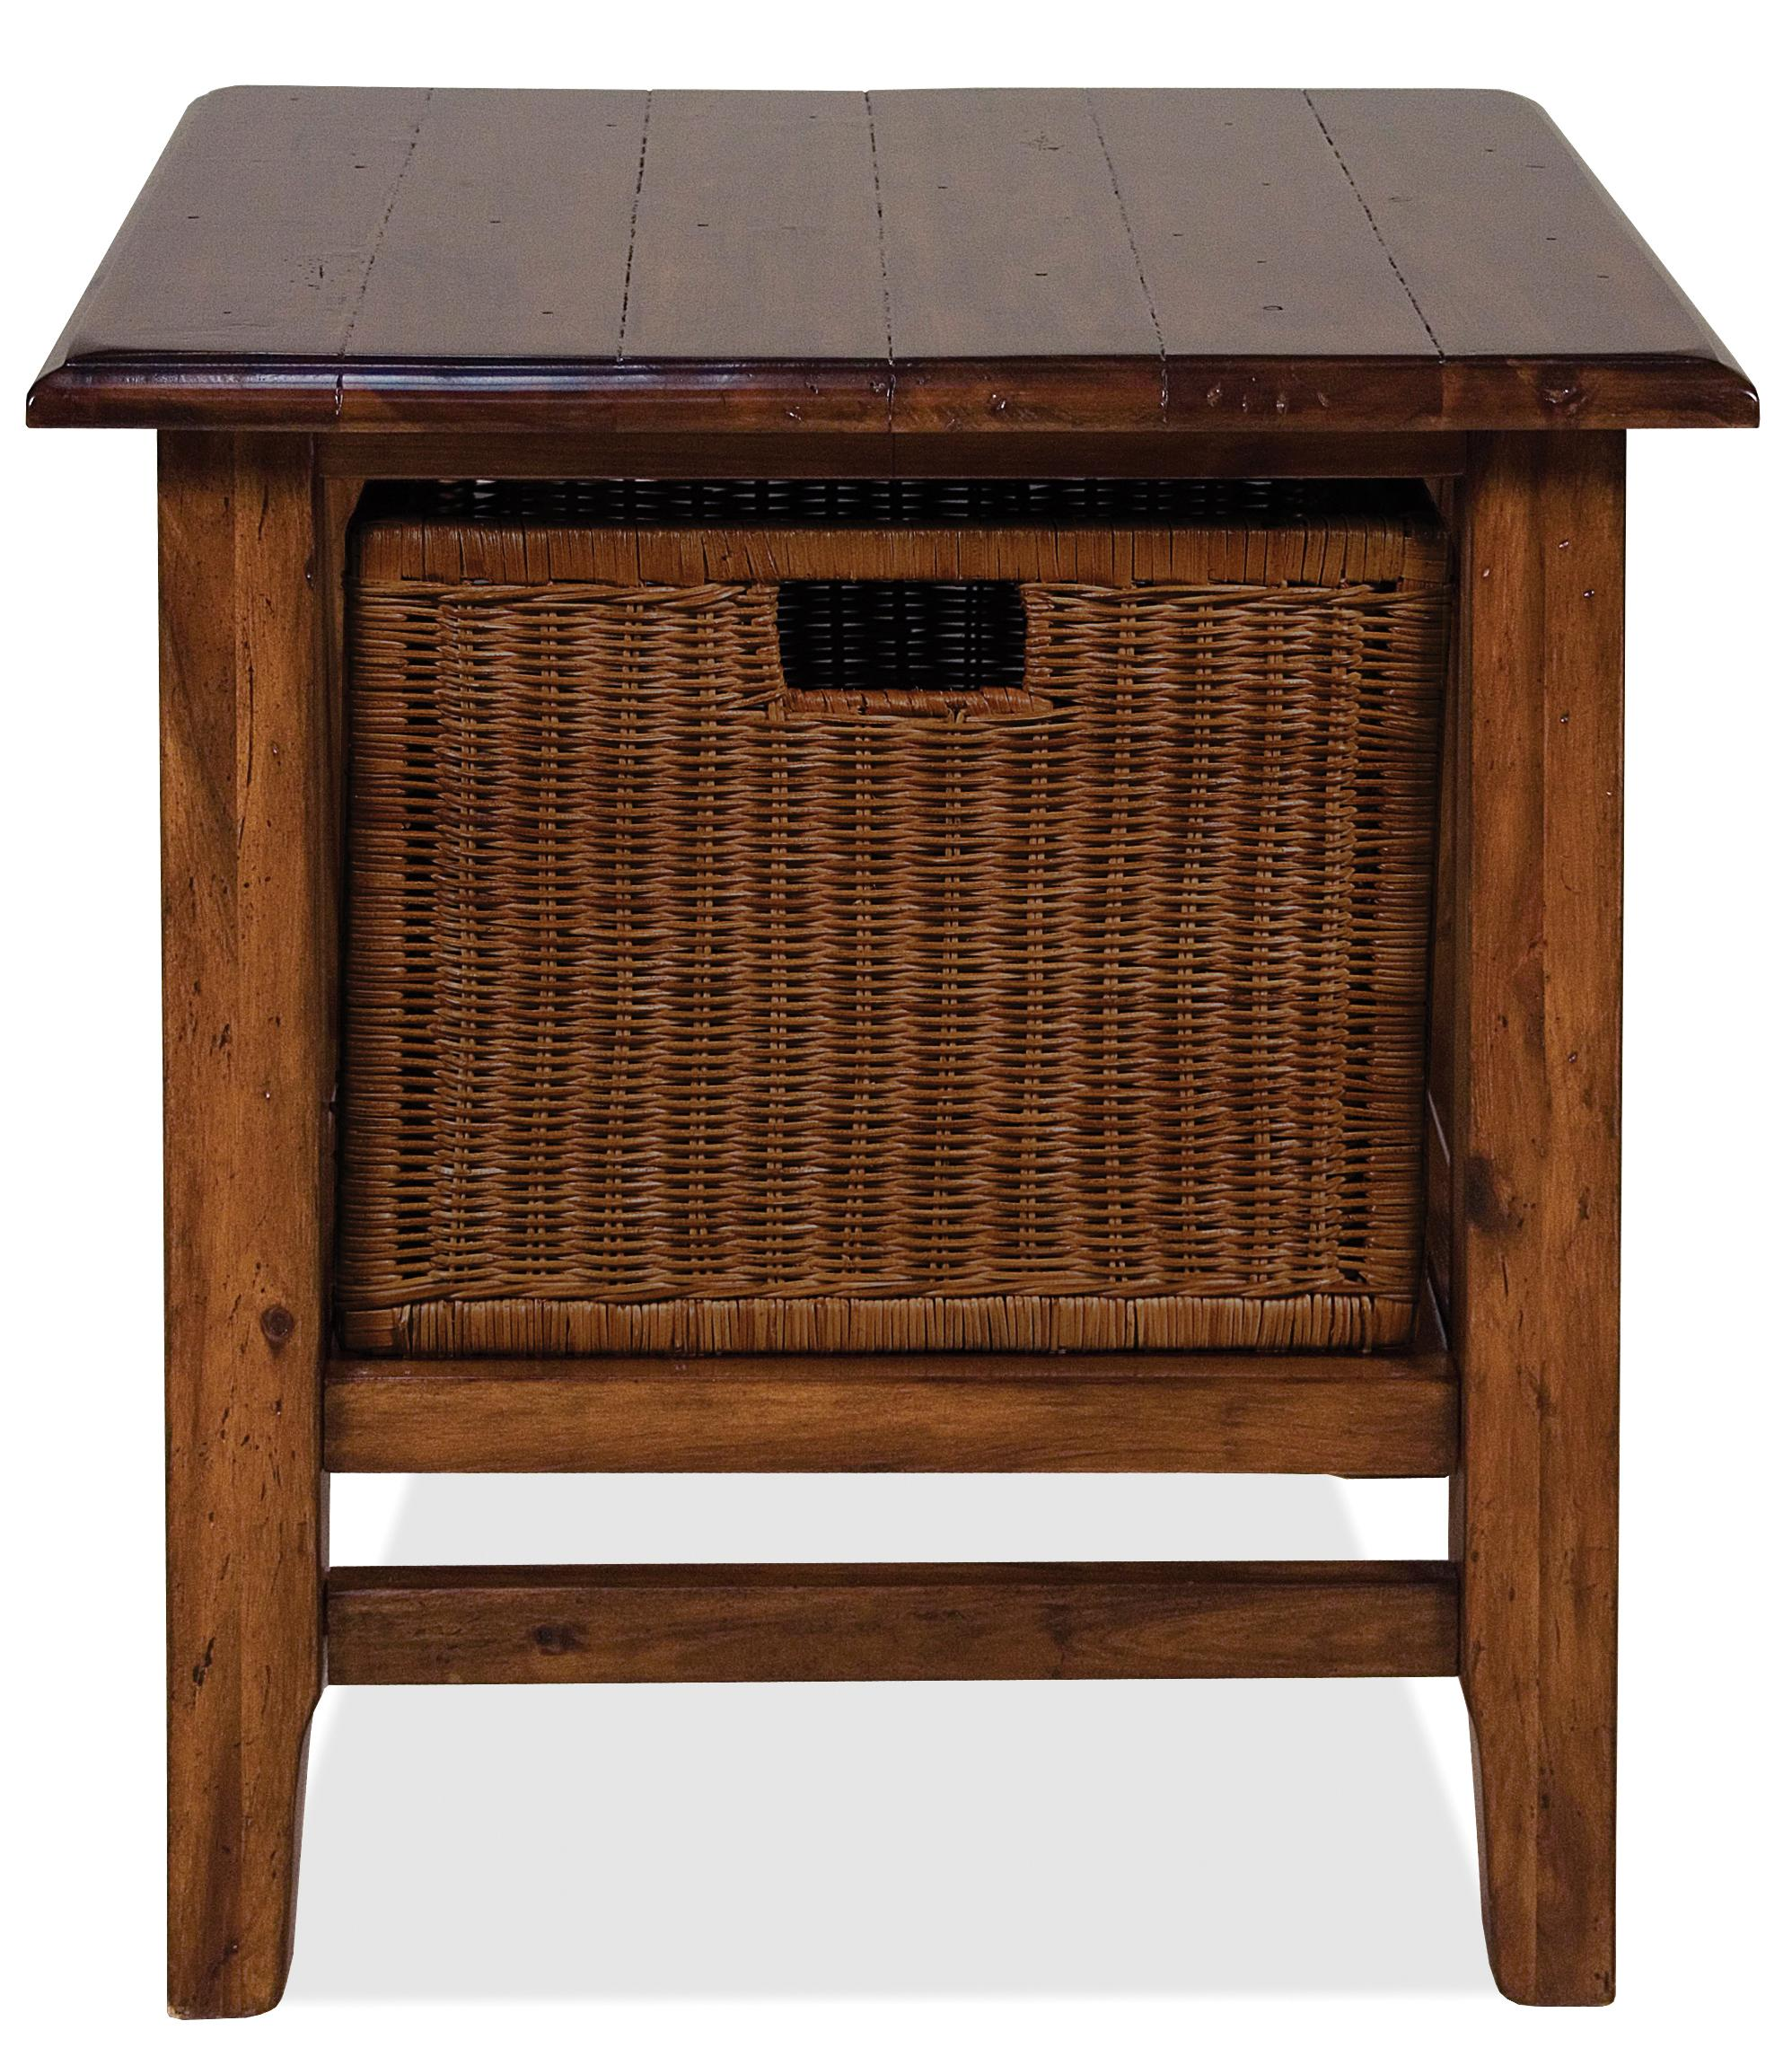 Rectangular End Table with Storage Basket